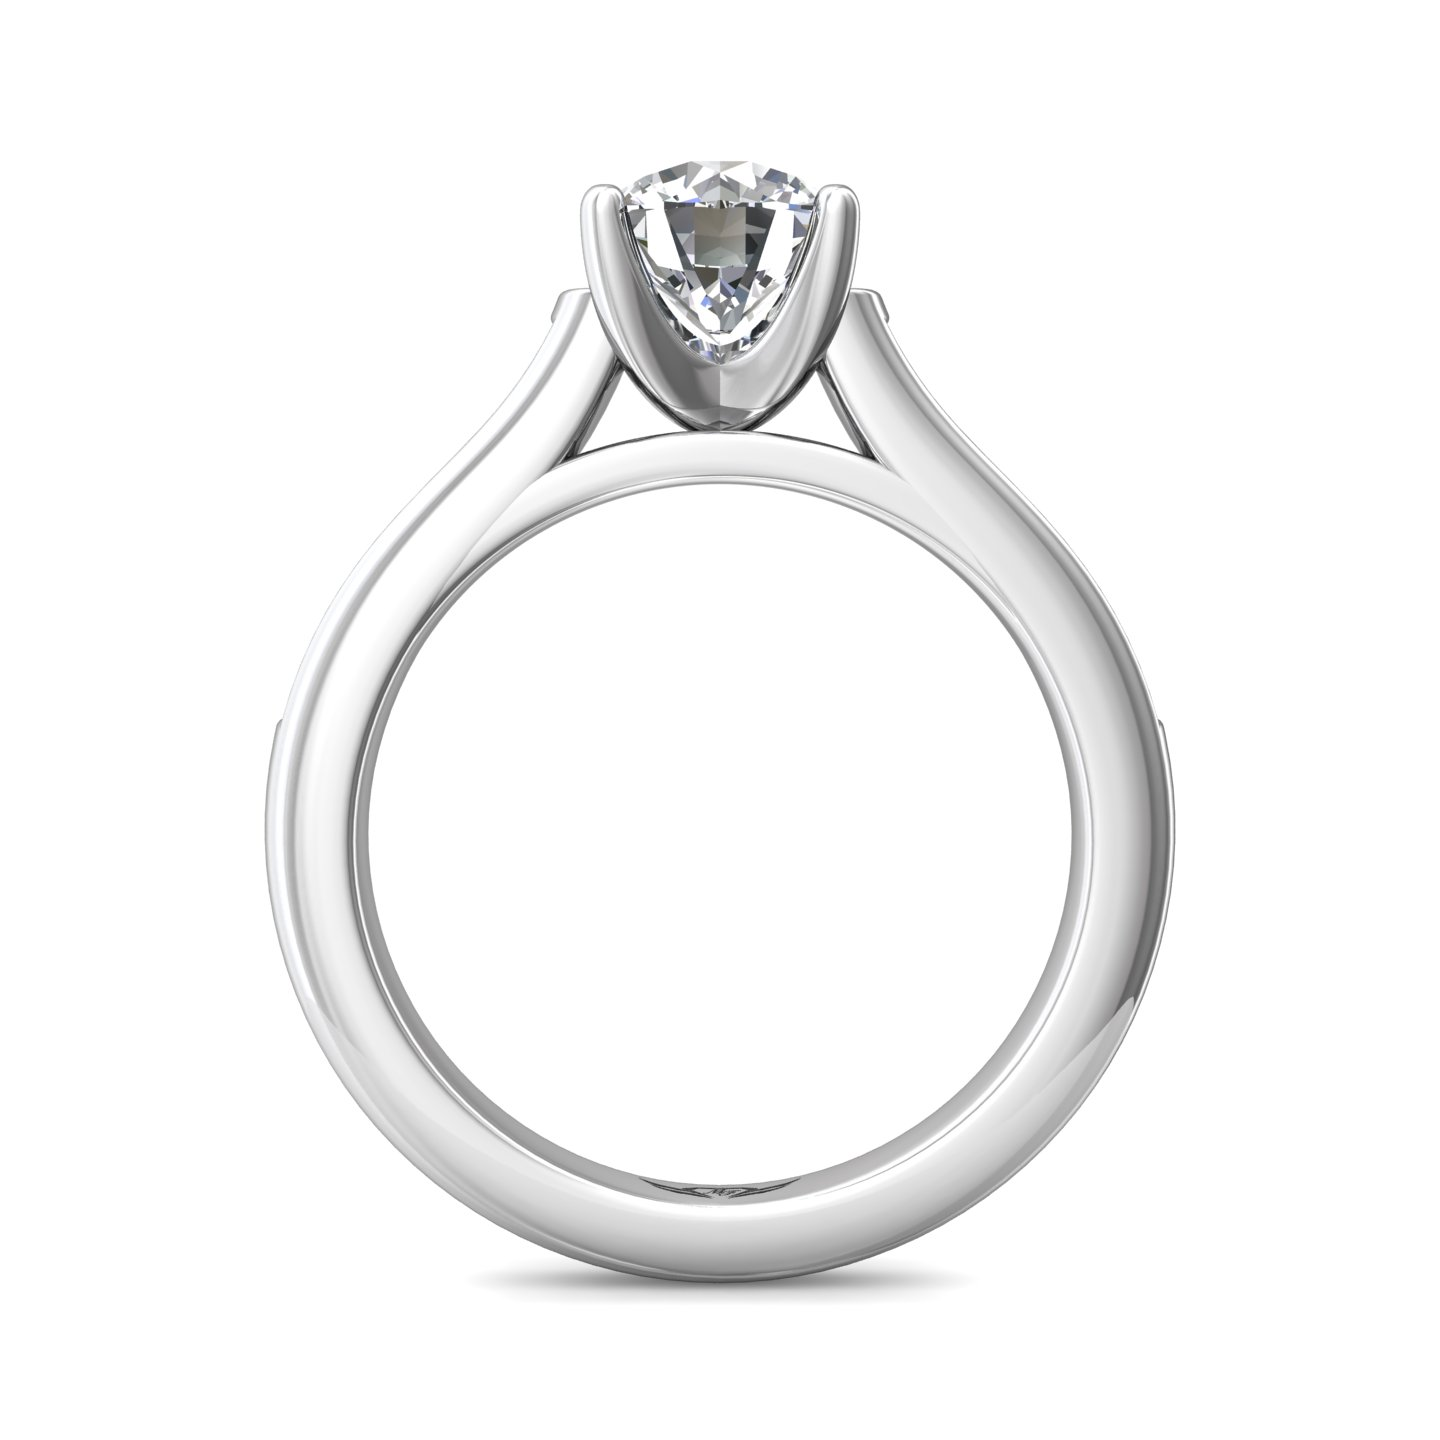 Rings - 14K White Gold FlyerFit Channel/Shared Prong Engagement Ring - image 2